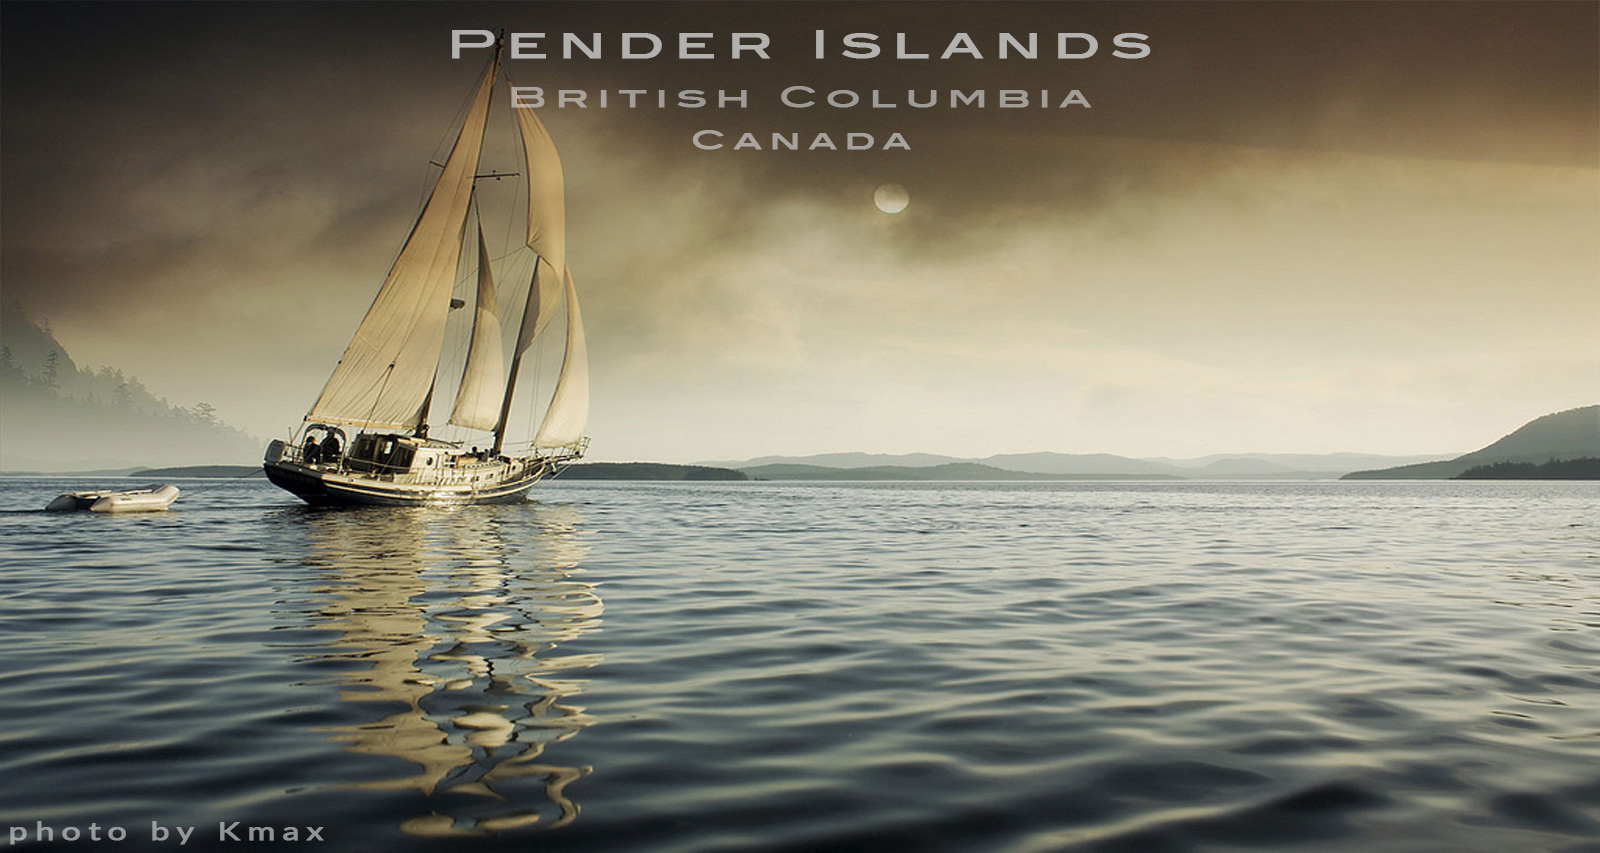 Pender Islands, BC, Canada